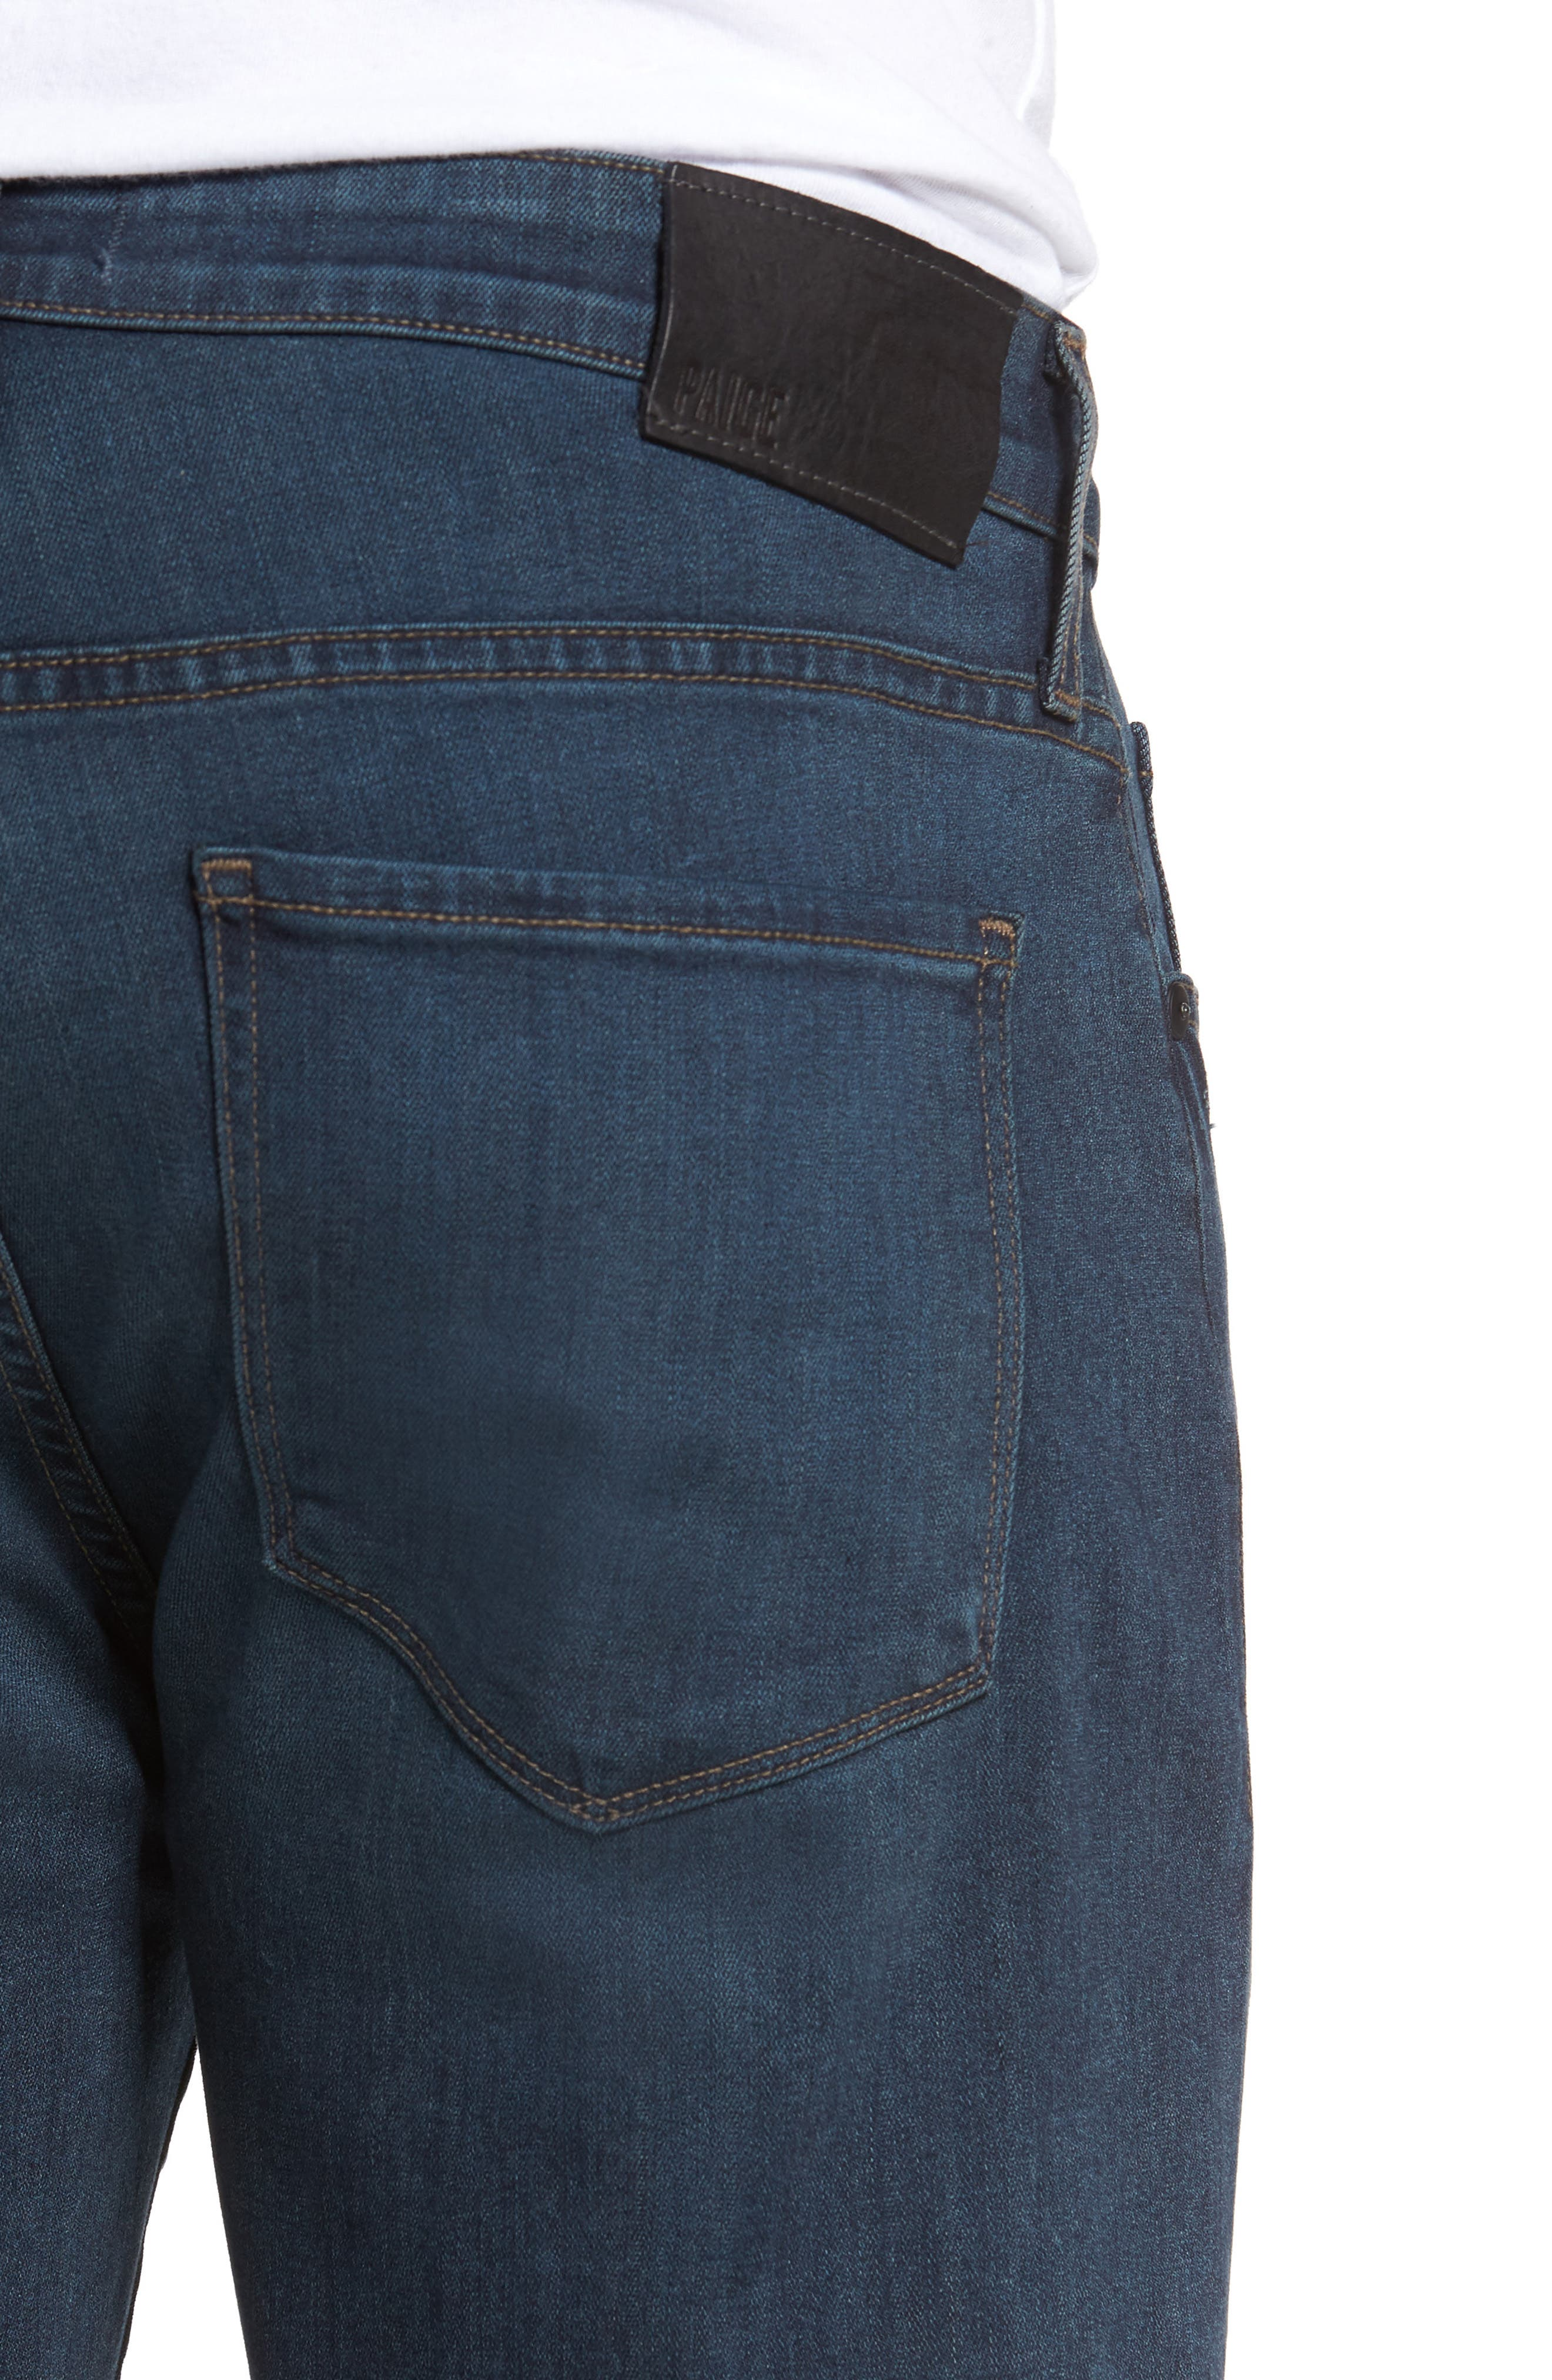 Federal Slim Straight Fit Jeans,                             Alternate thumbnail 4, color,                             Points